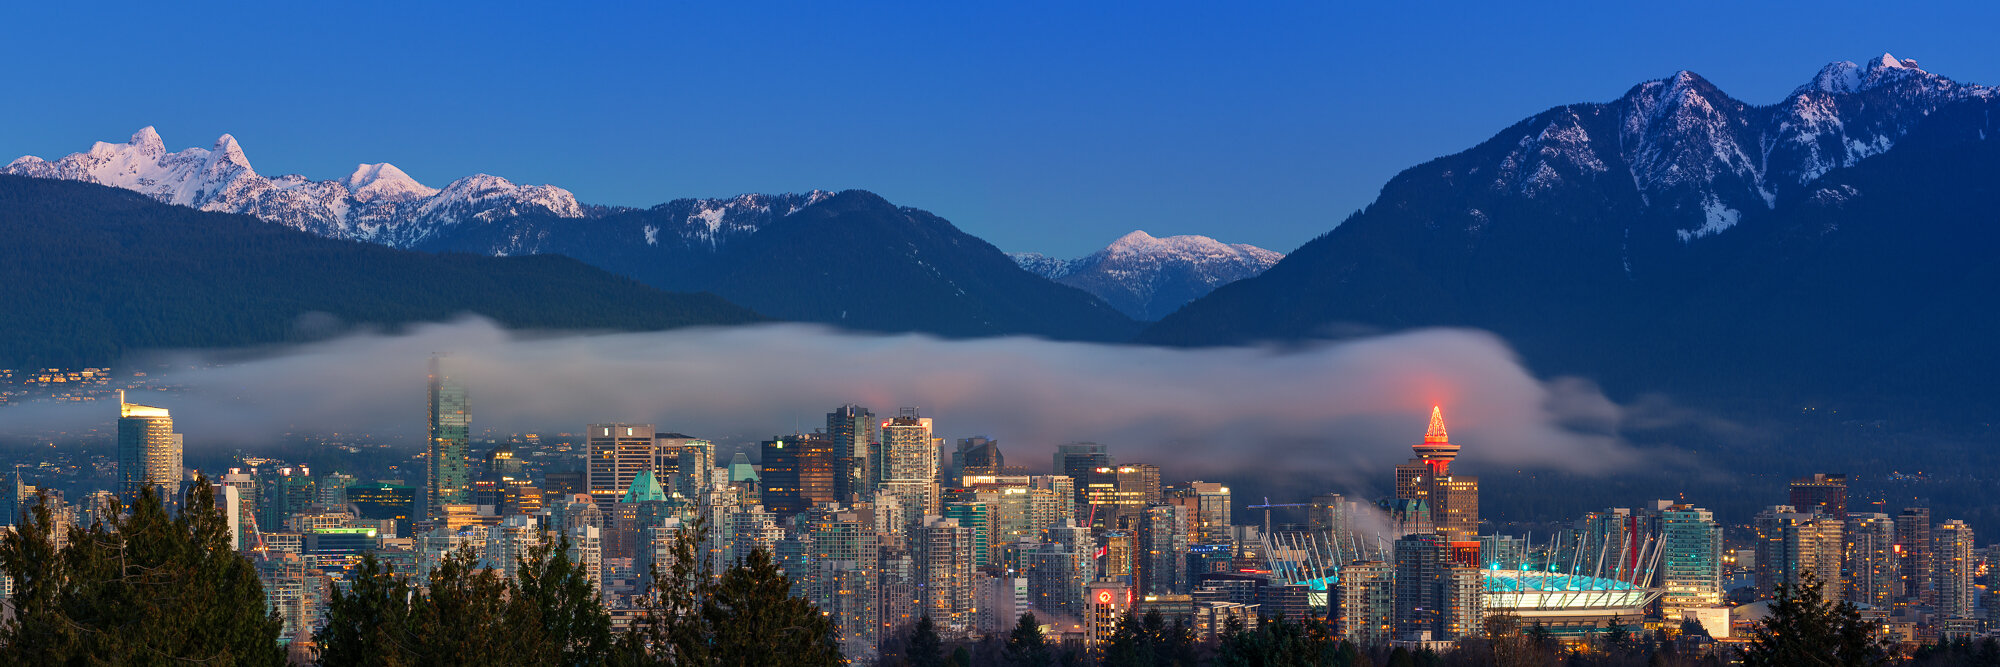 Vancouver City Photography: 'Winter Sunrise over Vancouver'